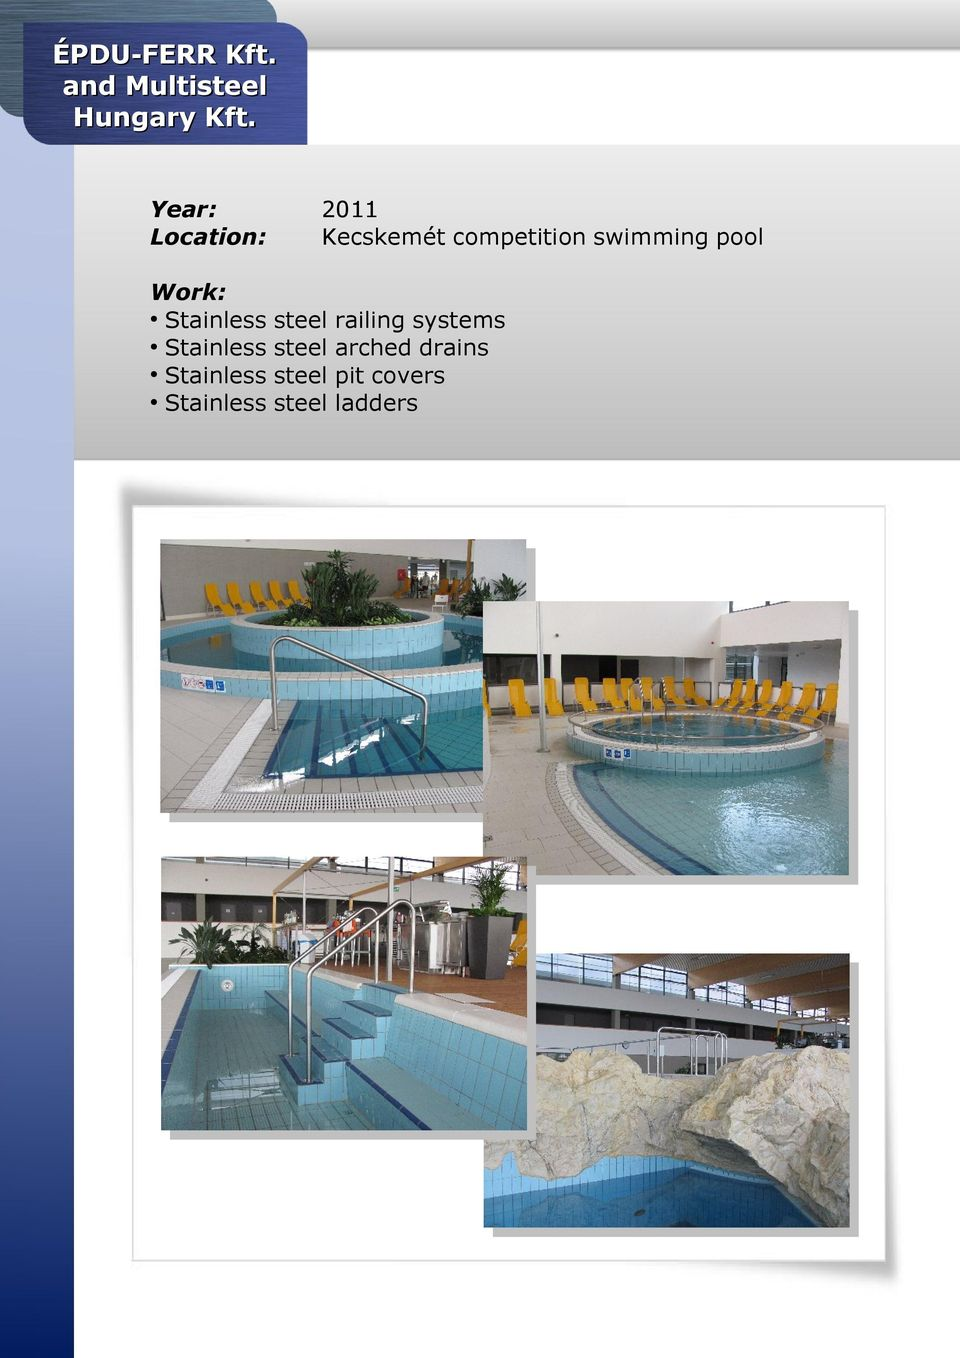 Kecskemét competition swimming pool steel steel